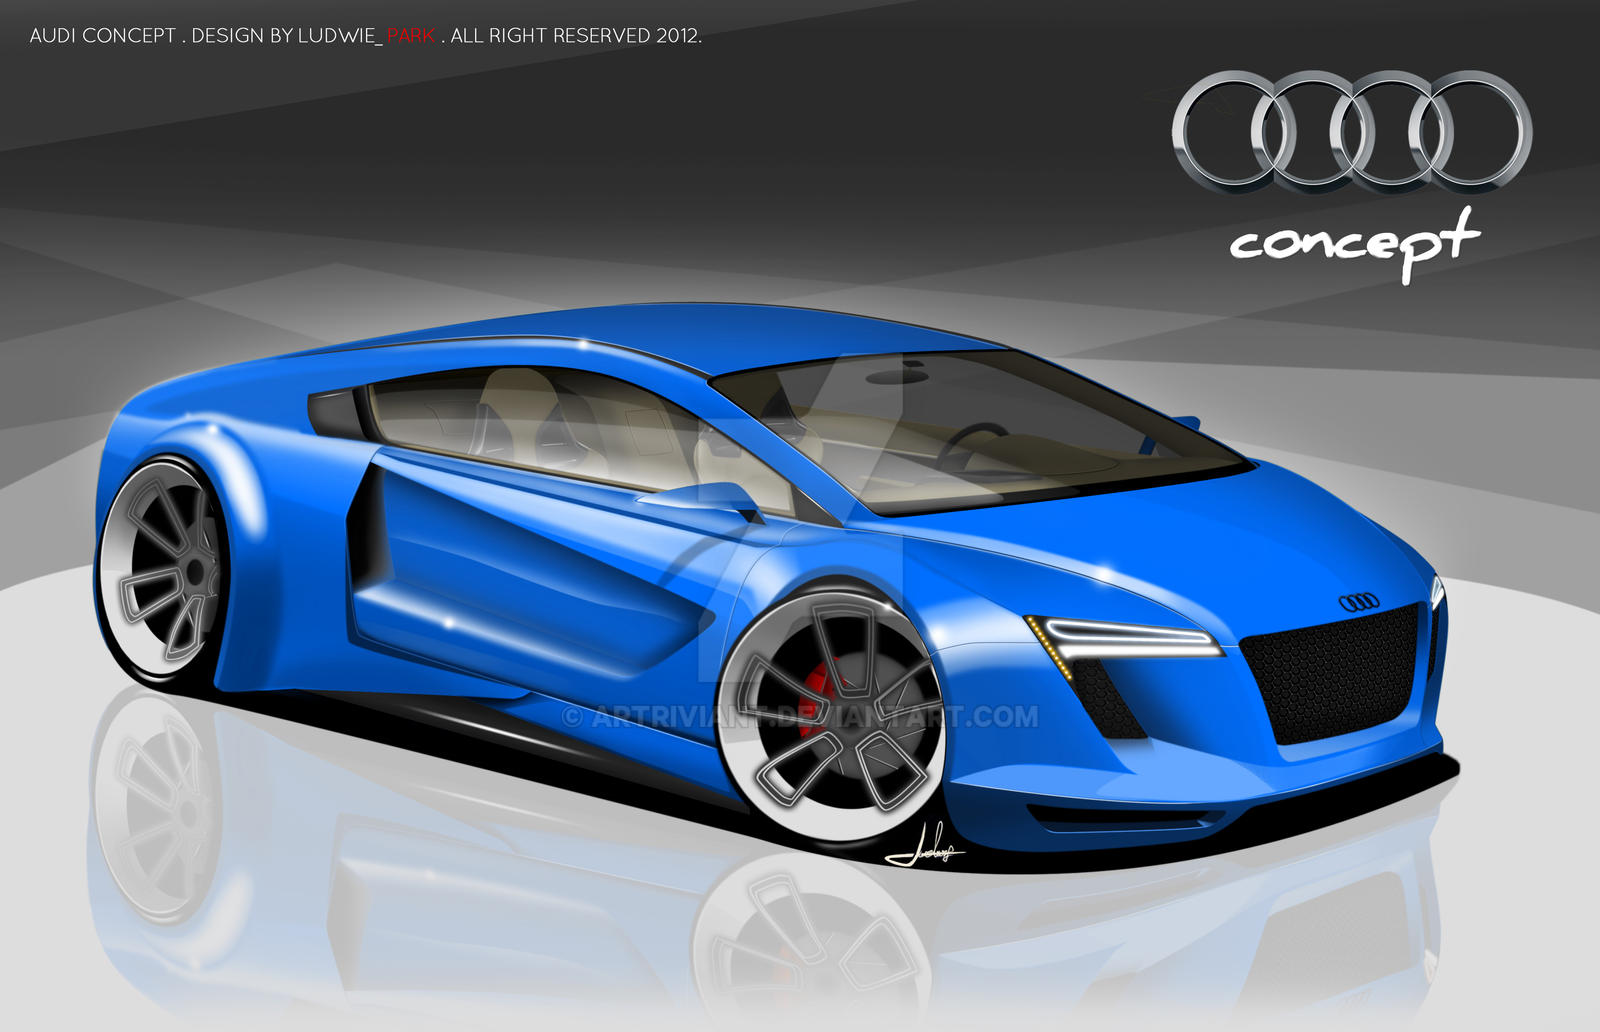 Audi Concept A9 By Artriviant On Deviantart